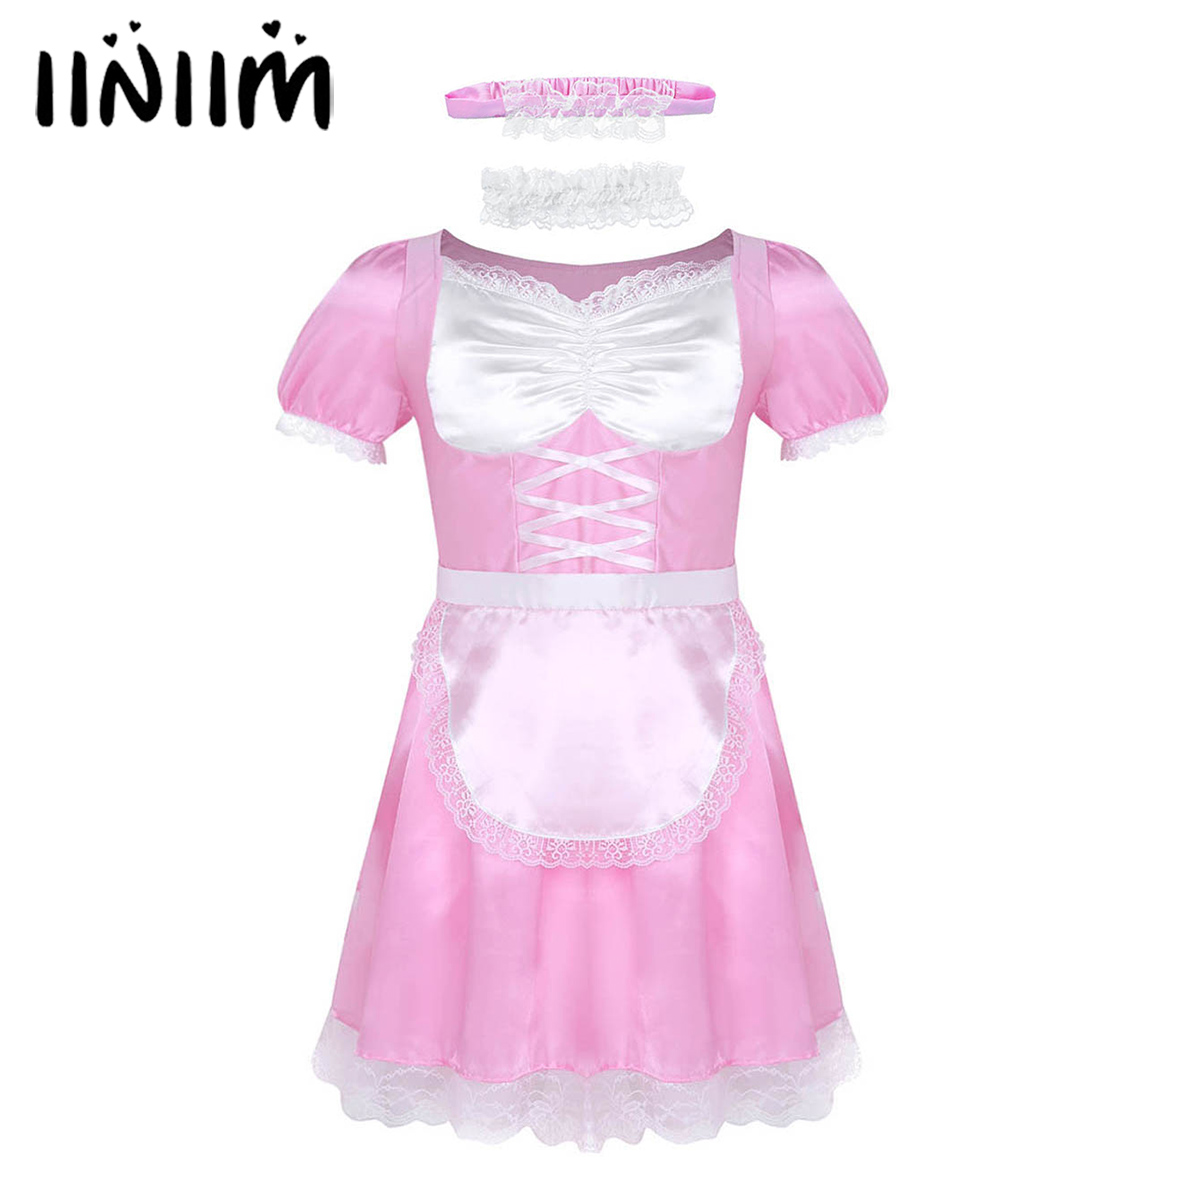 iiniim 3Pcs Mens Sissy Maid Uniform <font><b>Fancy</b></font> <font><b>Dress</b></font> <font><b>Sexy</b></font> <font><b>Costumes</b></font> Clubwear Novelty Parties Satin <font><b>Dress</b></font> with Choker and Headband image